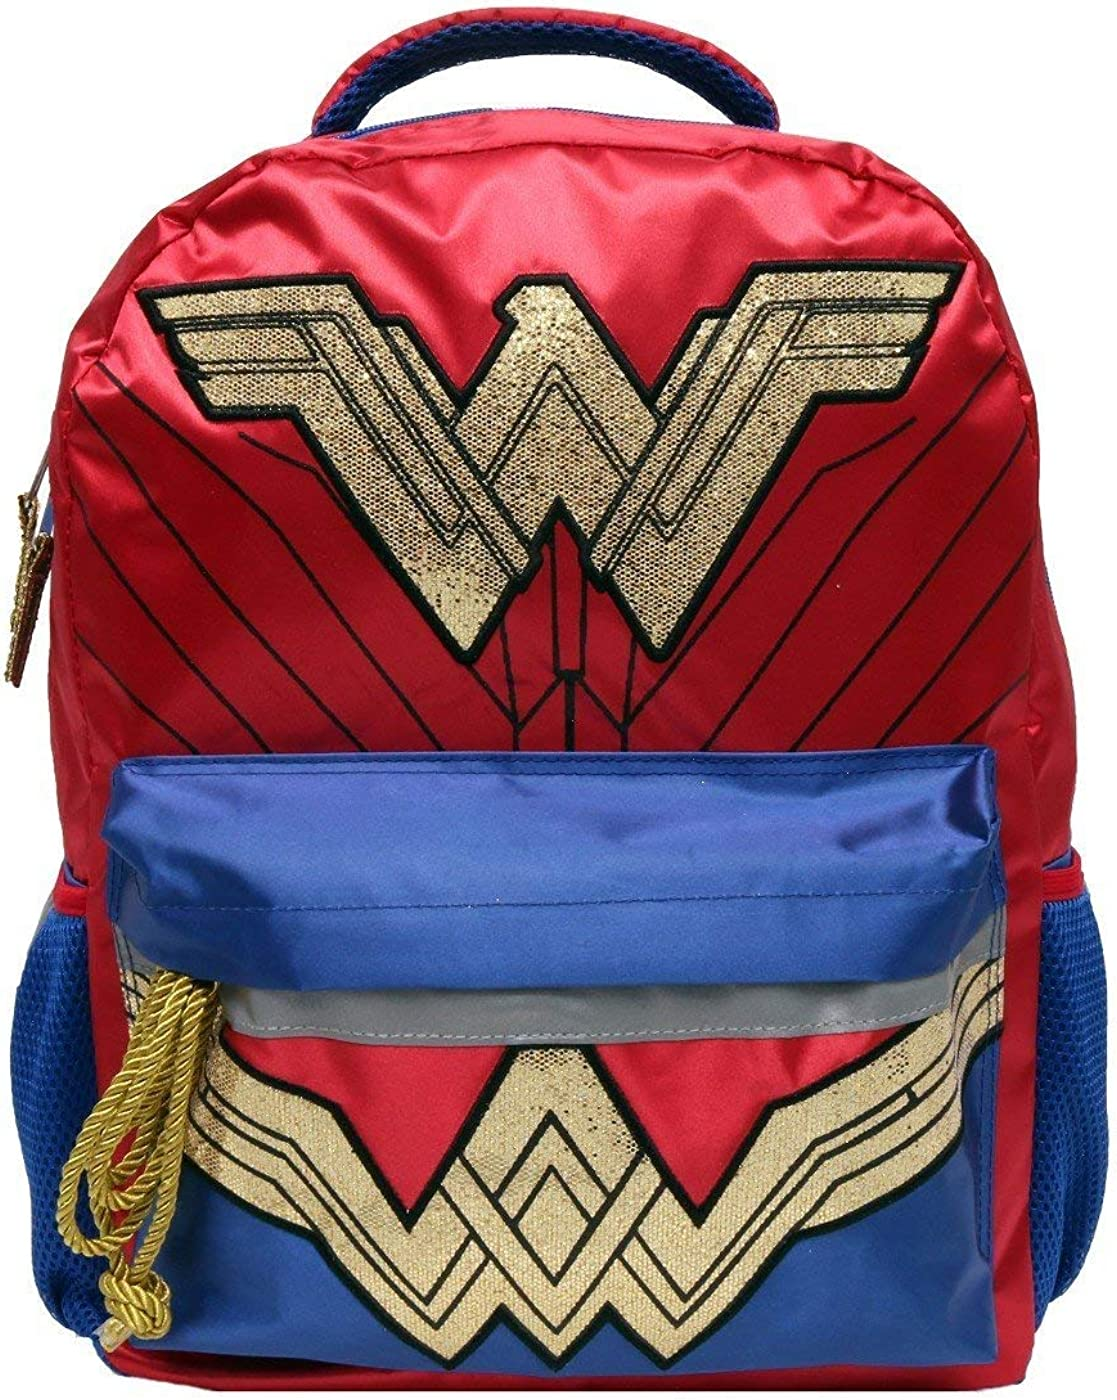 "Wonder Woman Gold Glitter 16"" Kids' Backpack"